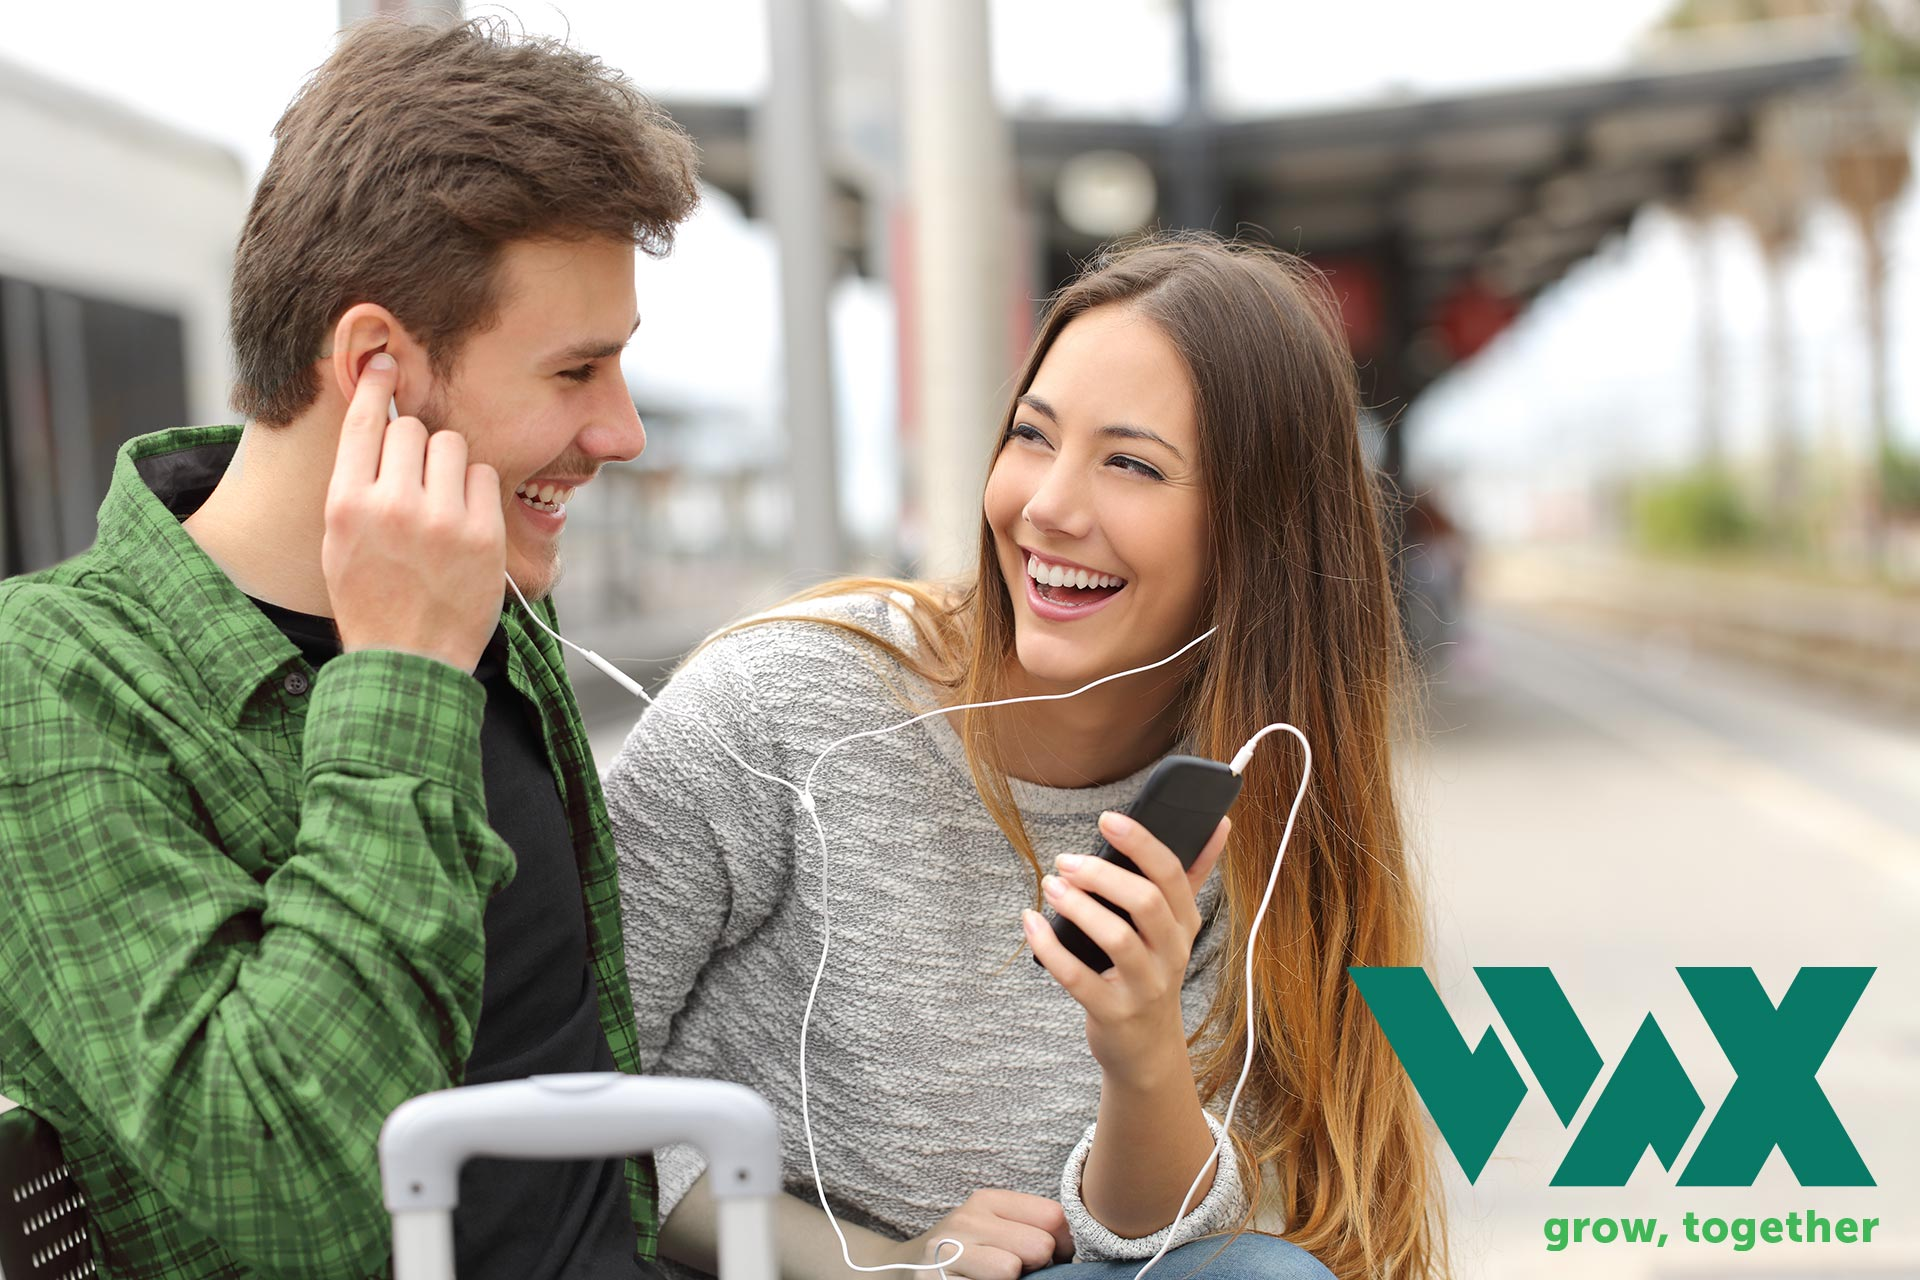 Wax: A couple shares ear phones to listen to music on their phone.